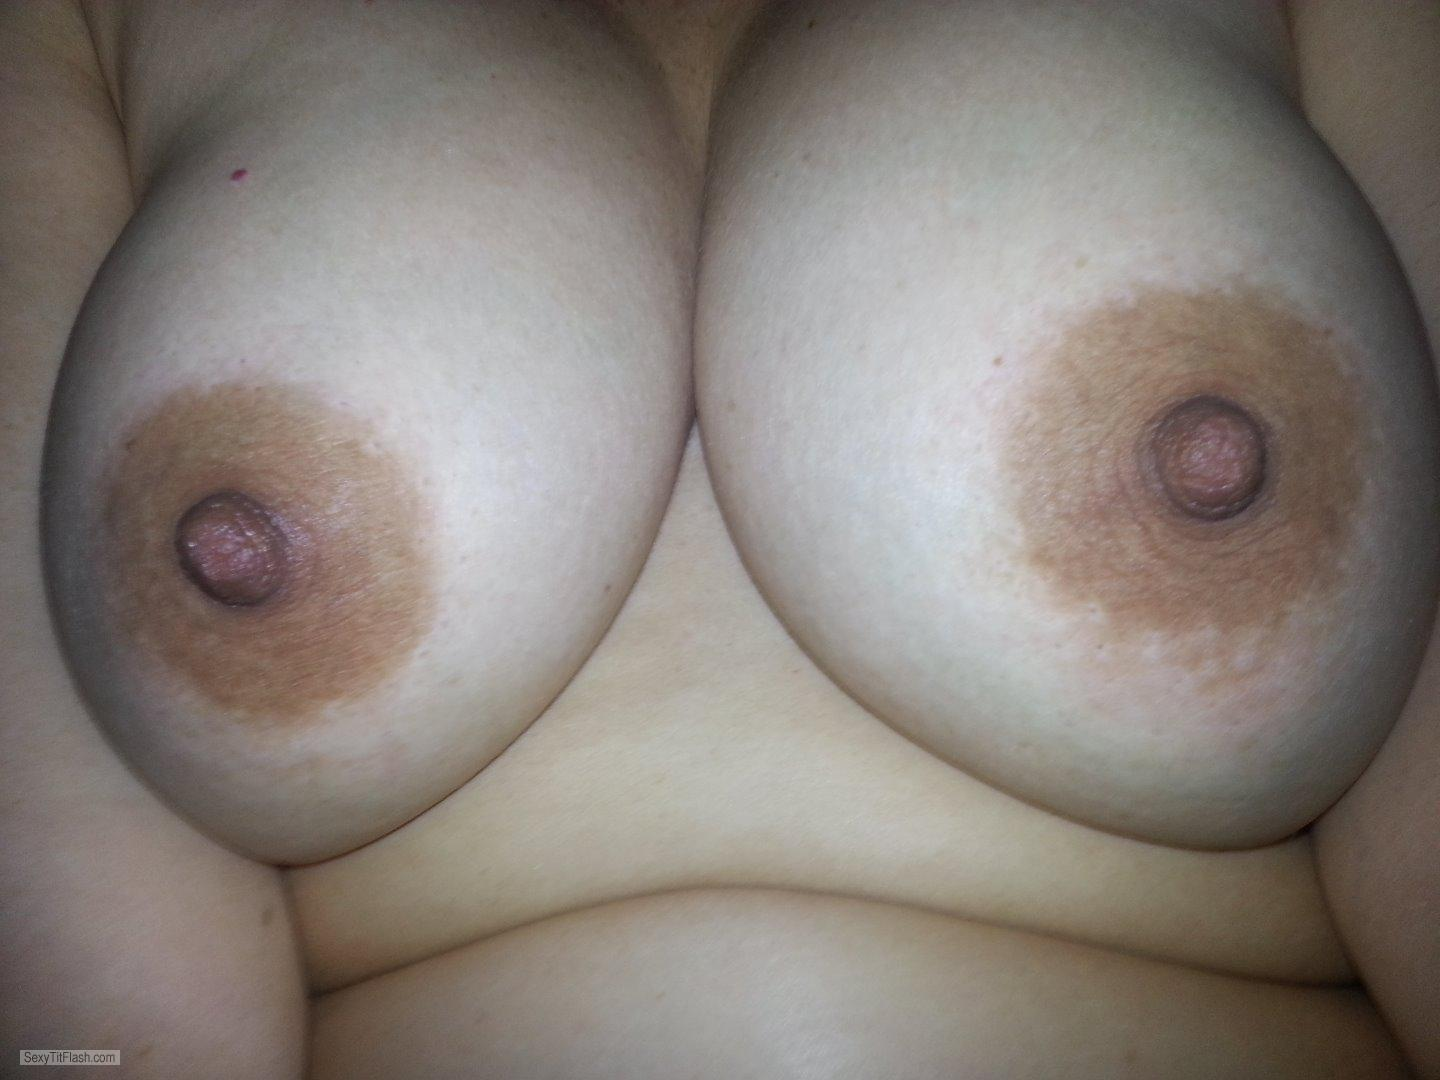 Tit Flash: Wife's Big Tits - Clava Chica from United States